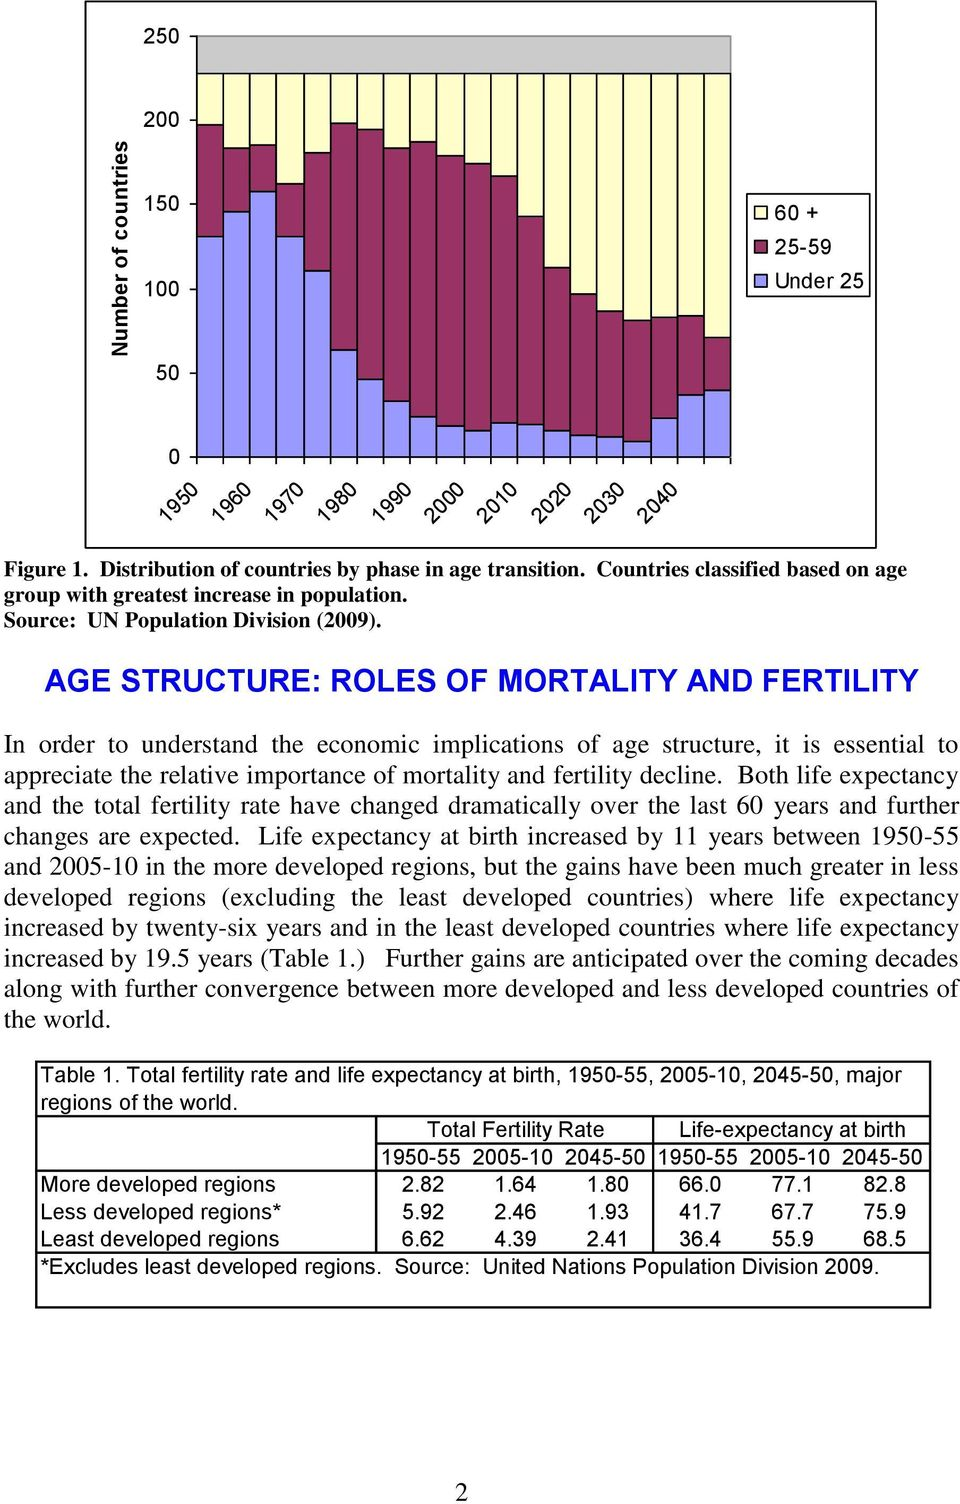 AGE STRUCTURE: ROLES OF MORTALITY AND FERTILITY In order to understand the economic implications of age structure, it is essential to appreciate the relative importance of mortality and fertility